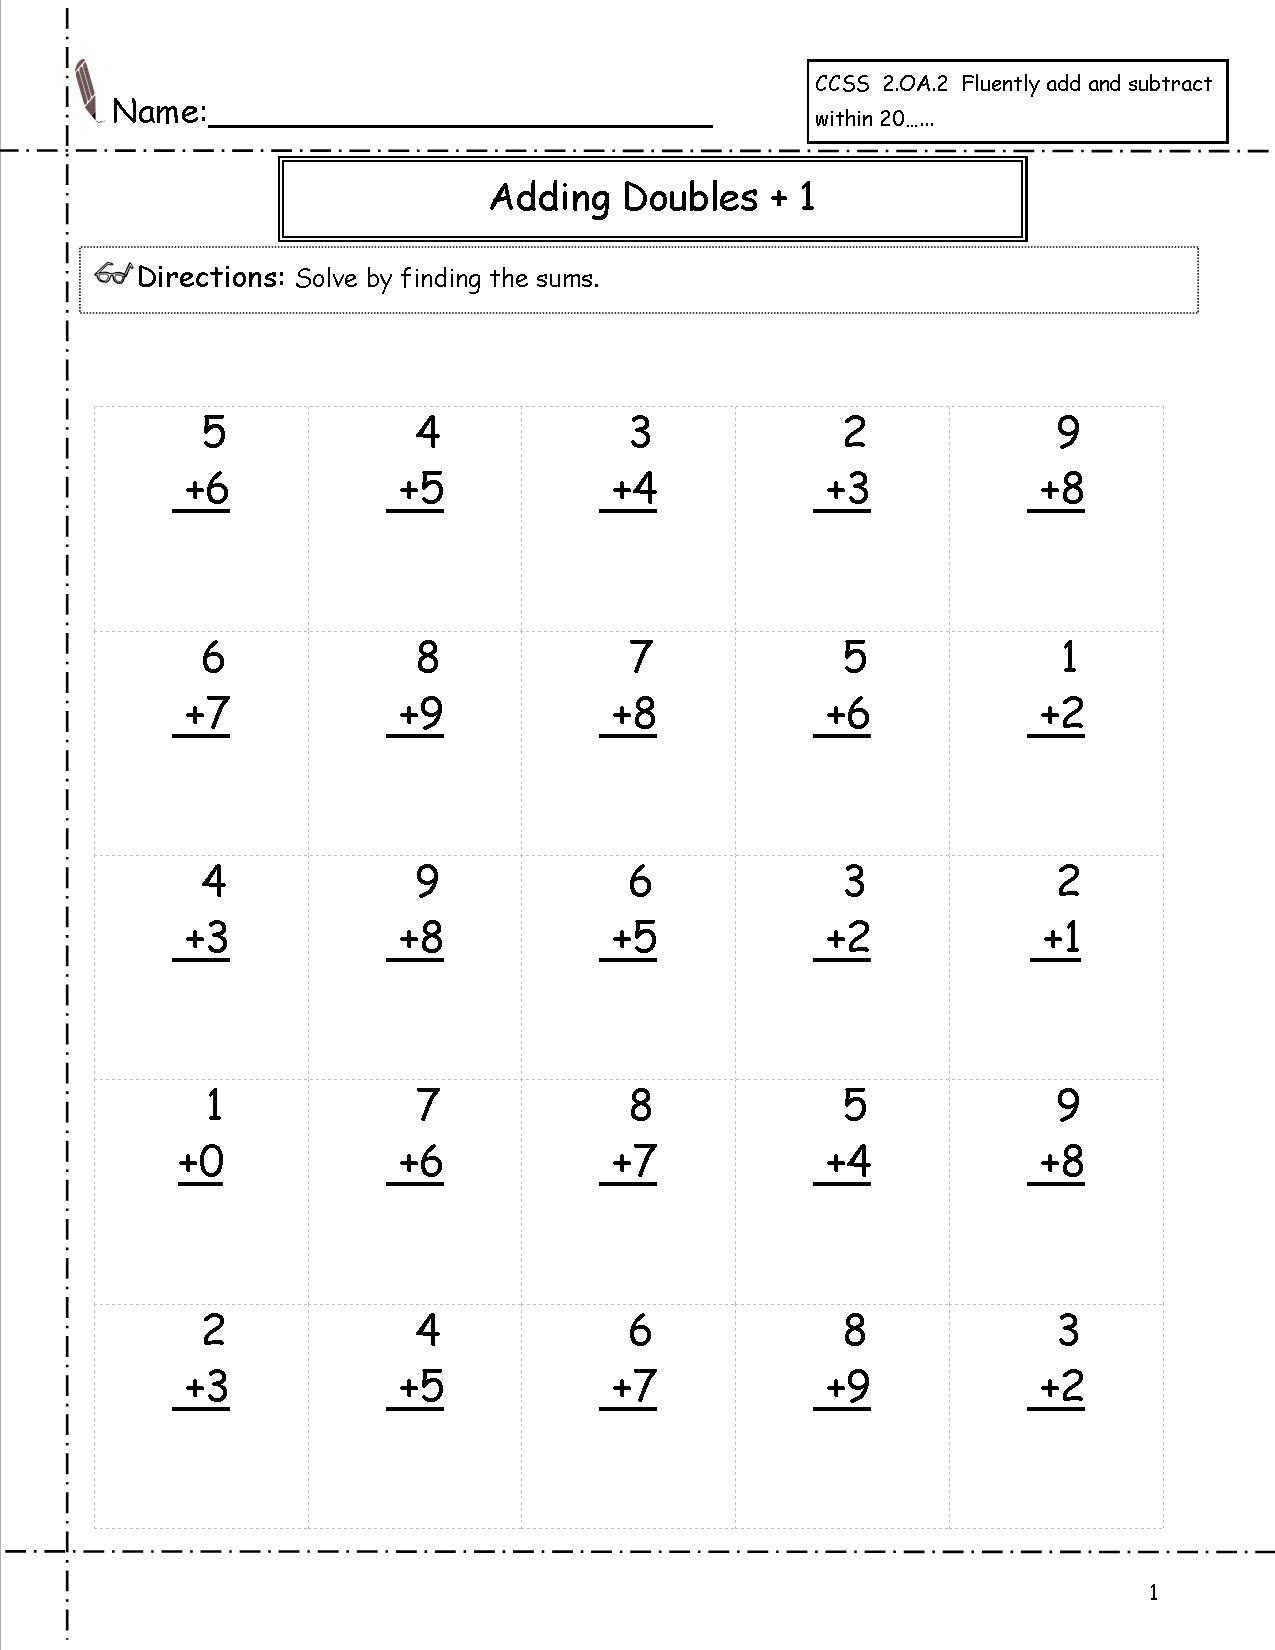 hight resolution of 5 Free Math Worksheets Second Grade 2 Addition Add 2 Digit Plus 1 Digit  Missing Addend No Regrouping - apocalomegaproductions.com